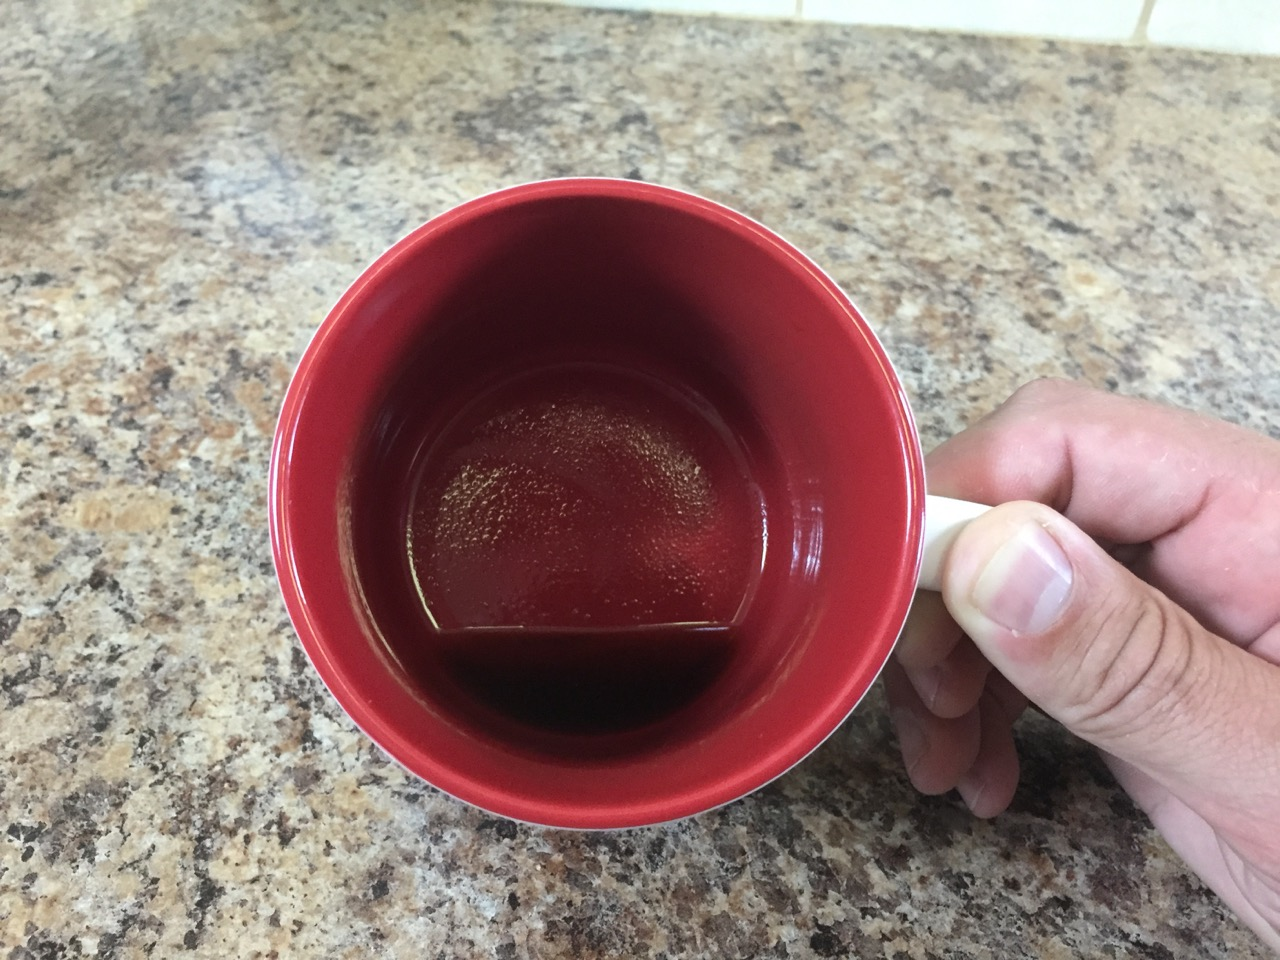 Sediment at bottom of a cup of french press coffee